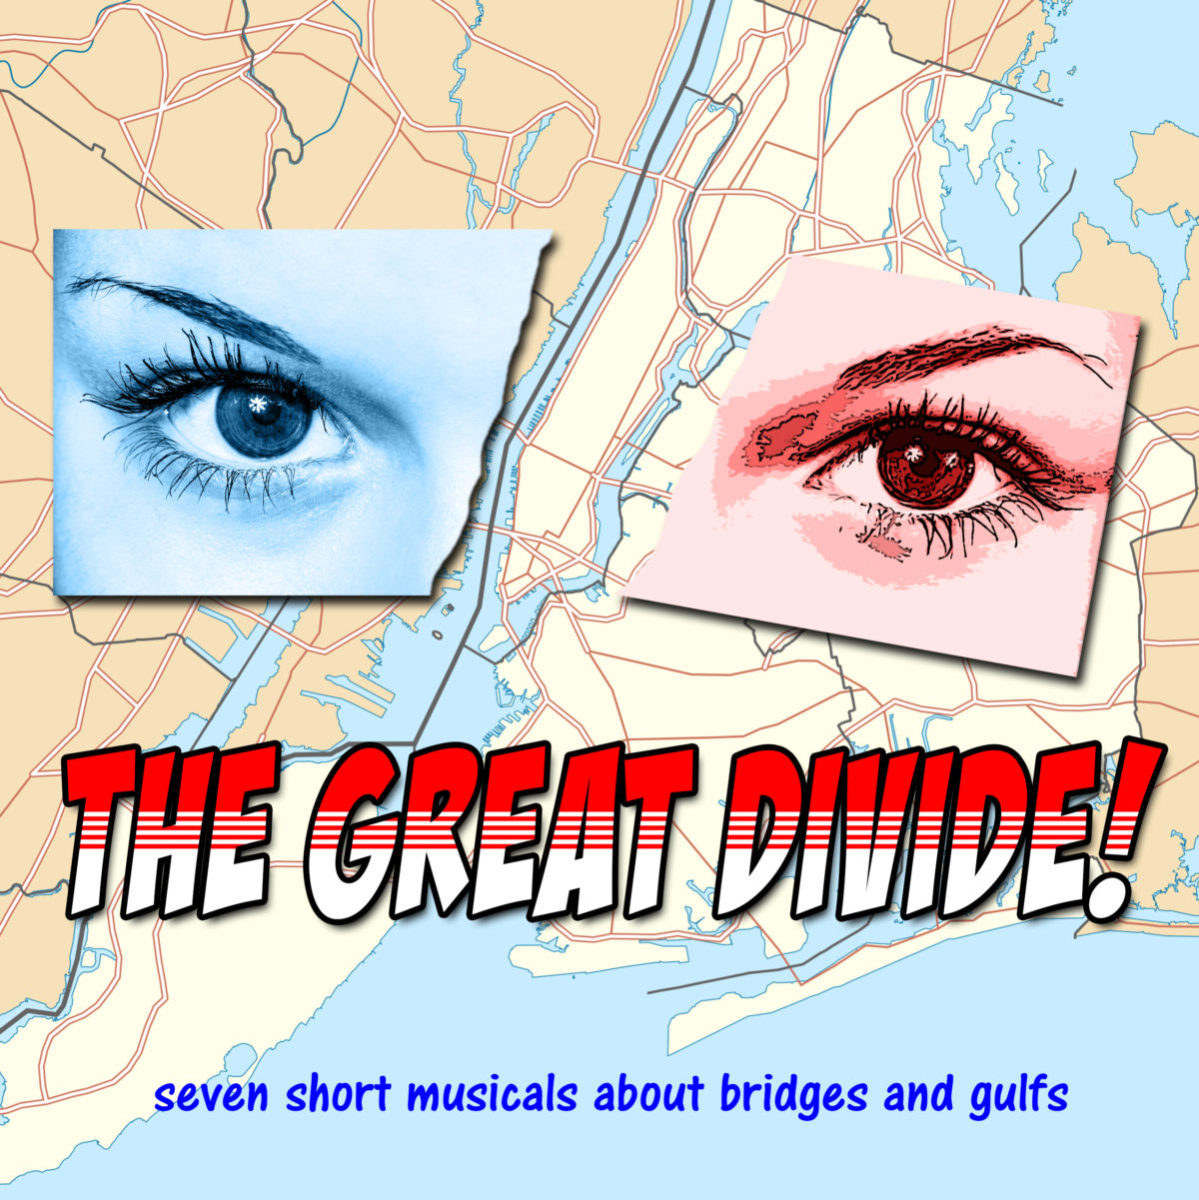 15 Minute Musicals 2018 - THE GREAT DIVIDE